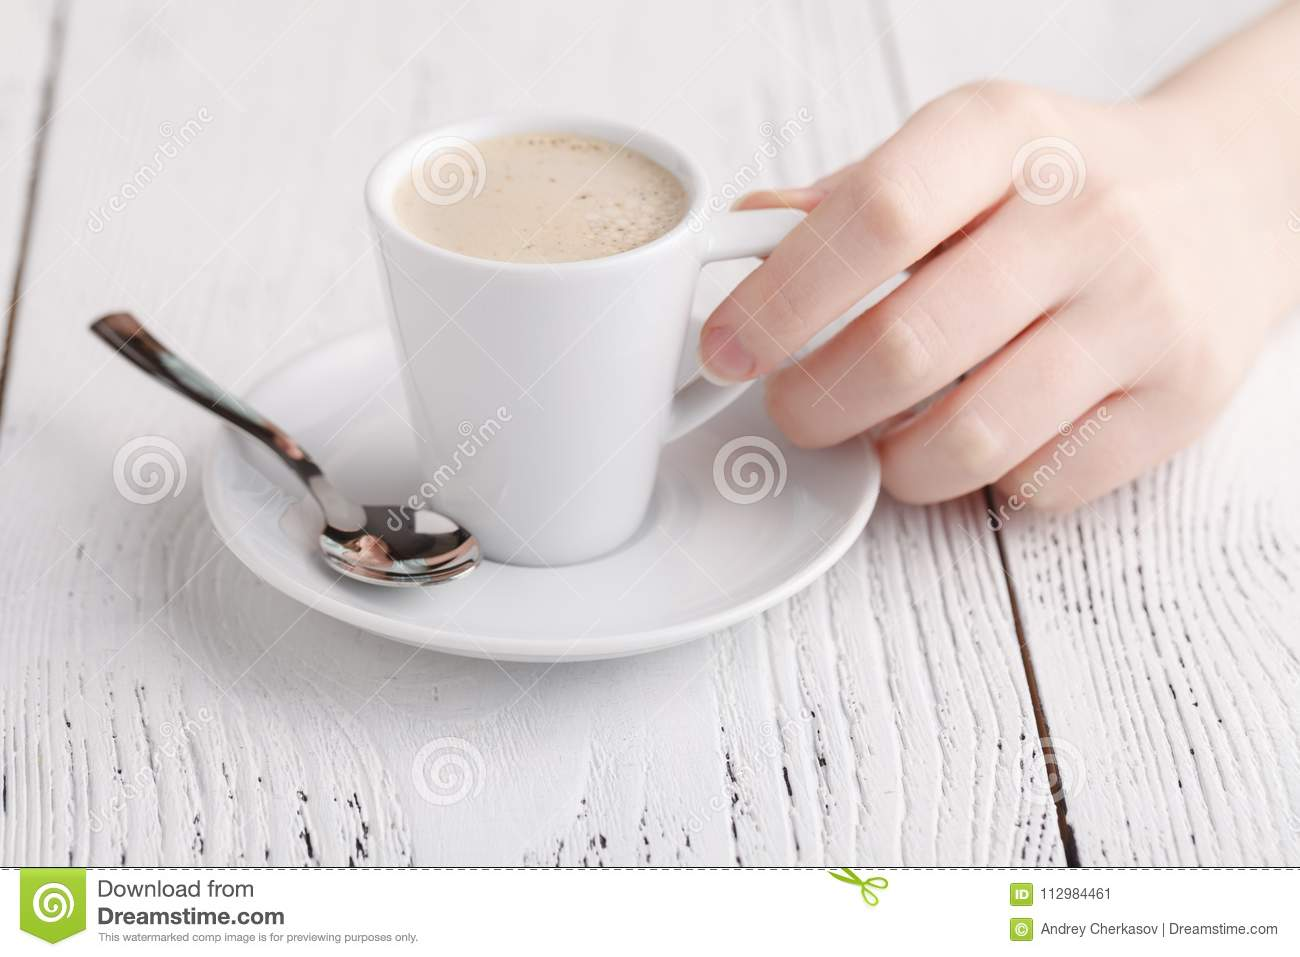 Woman is holding a cup of coffee